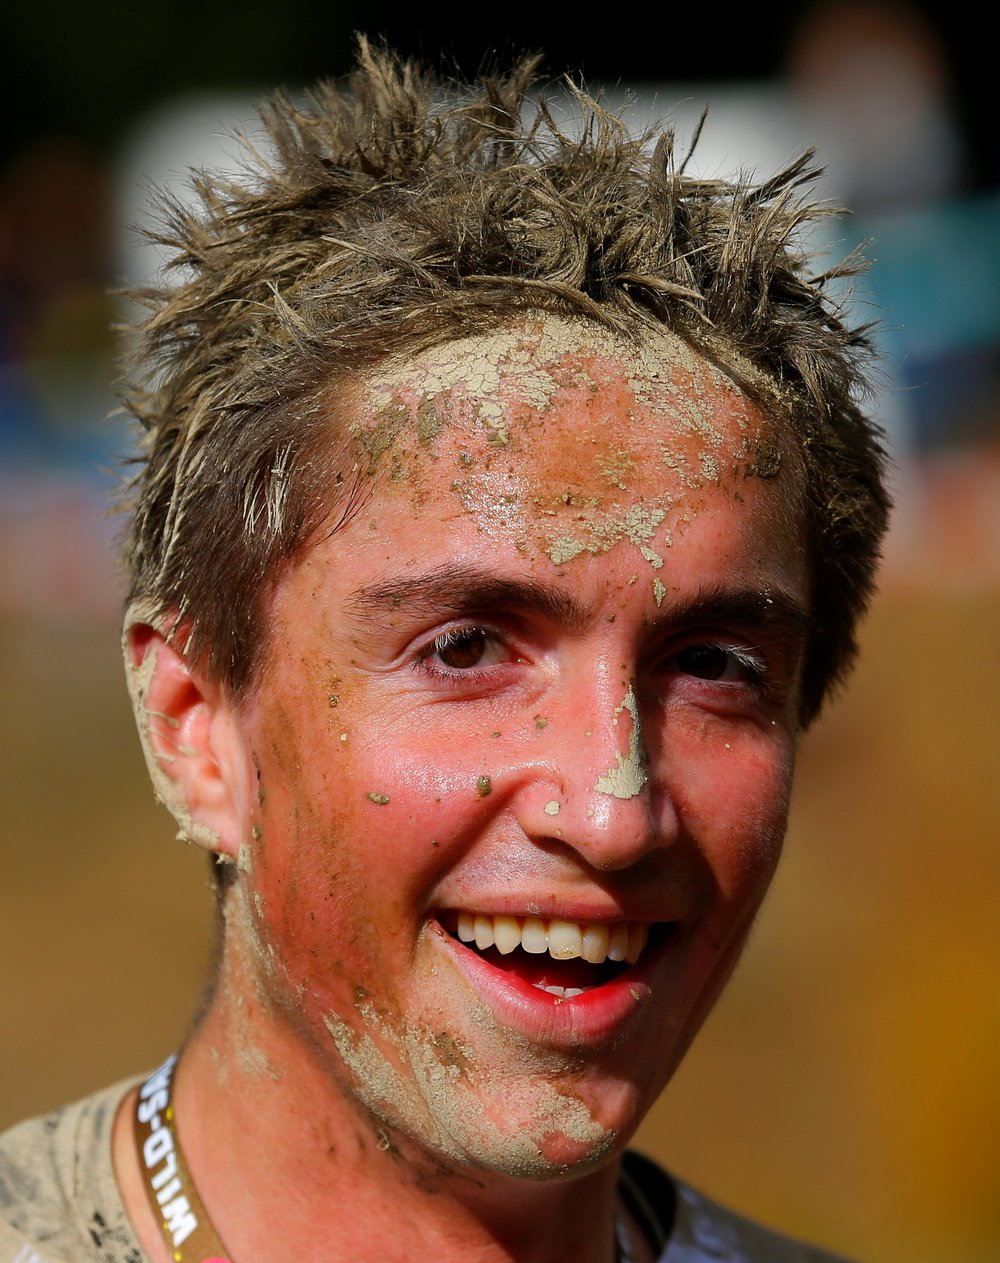 A competitors is seen after finishing the Wildsau Dirt Run (Wild Boar Dirt Run) obstacle course fun race at Hellsklamm ravine in Obertriesting